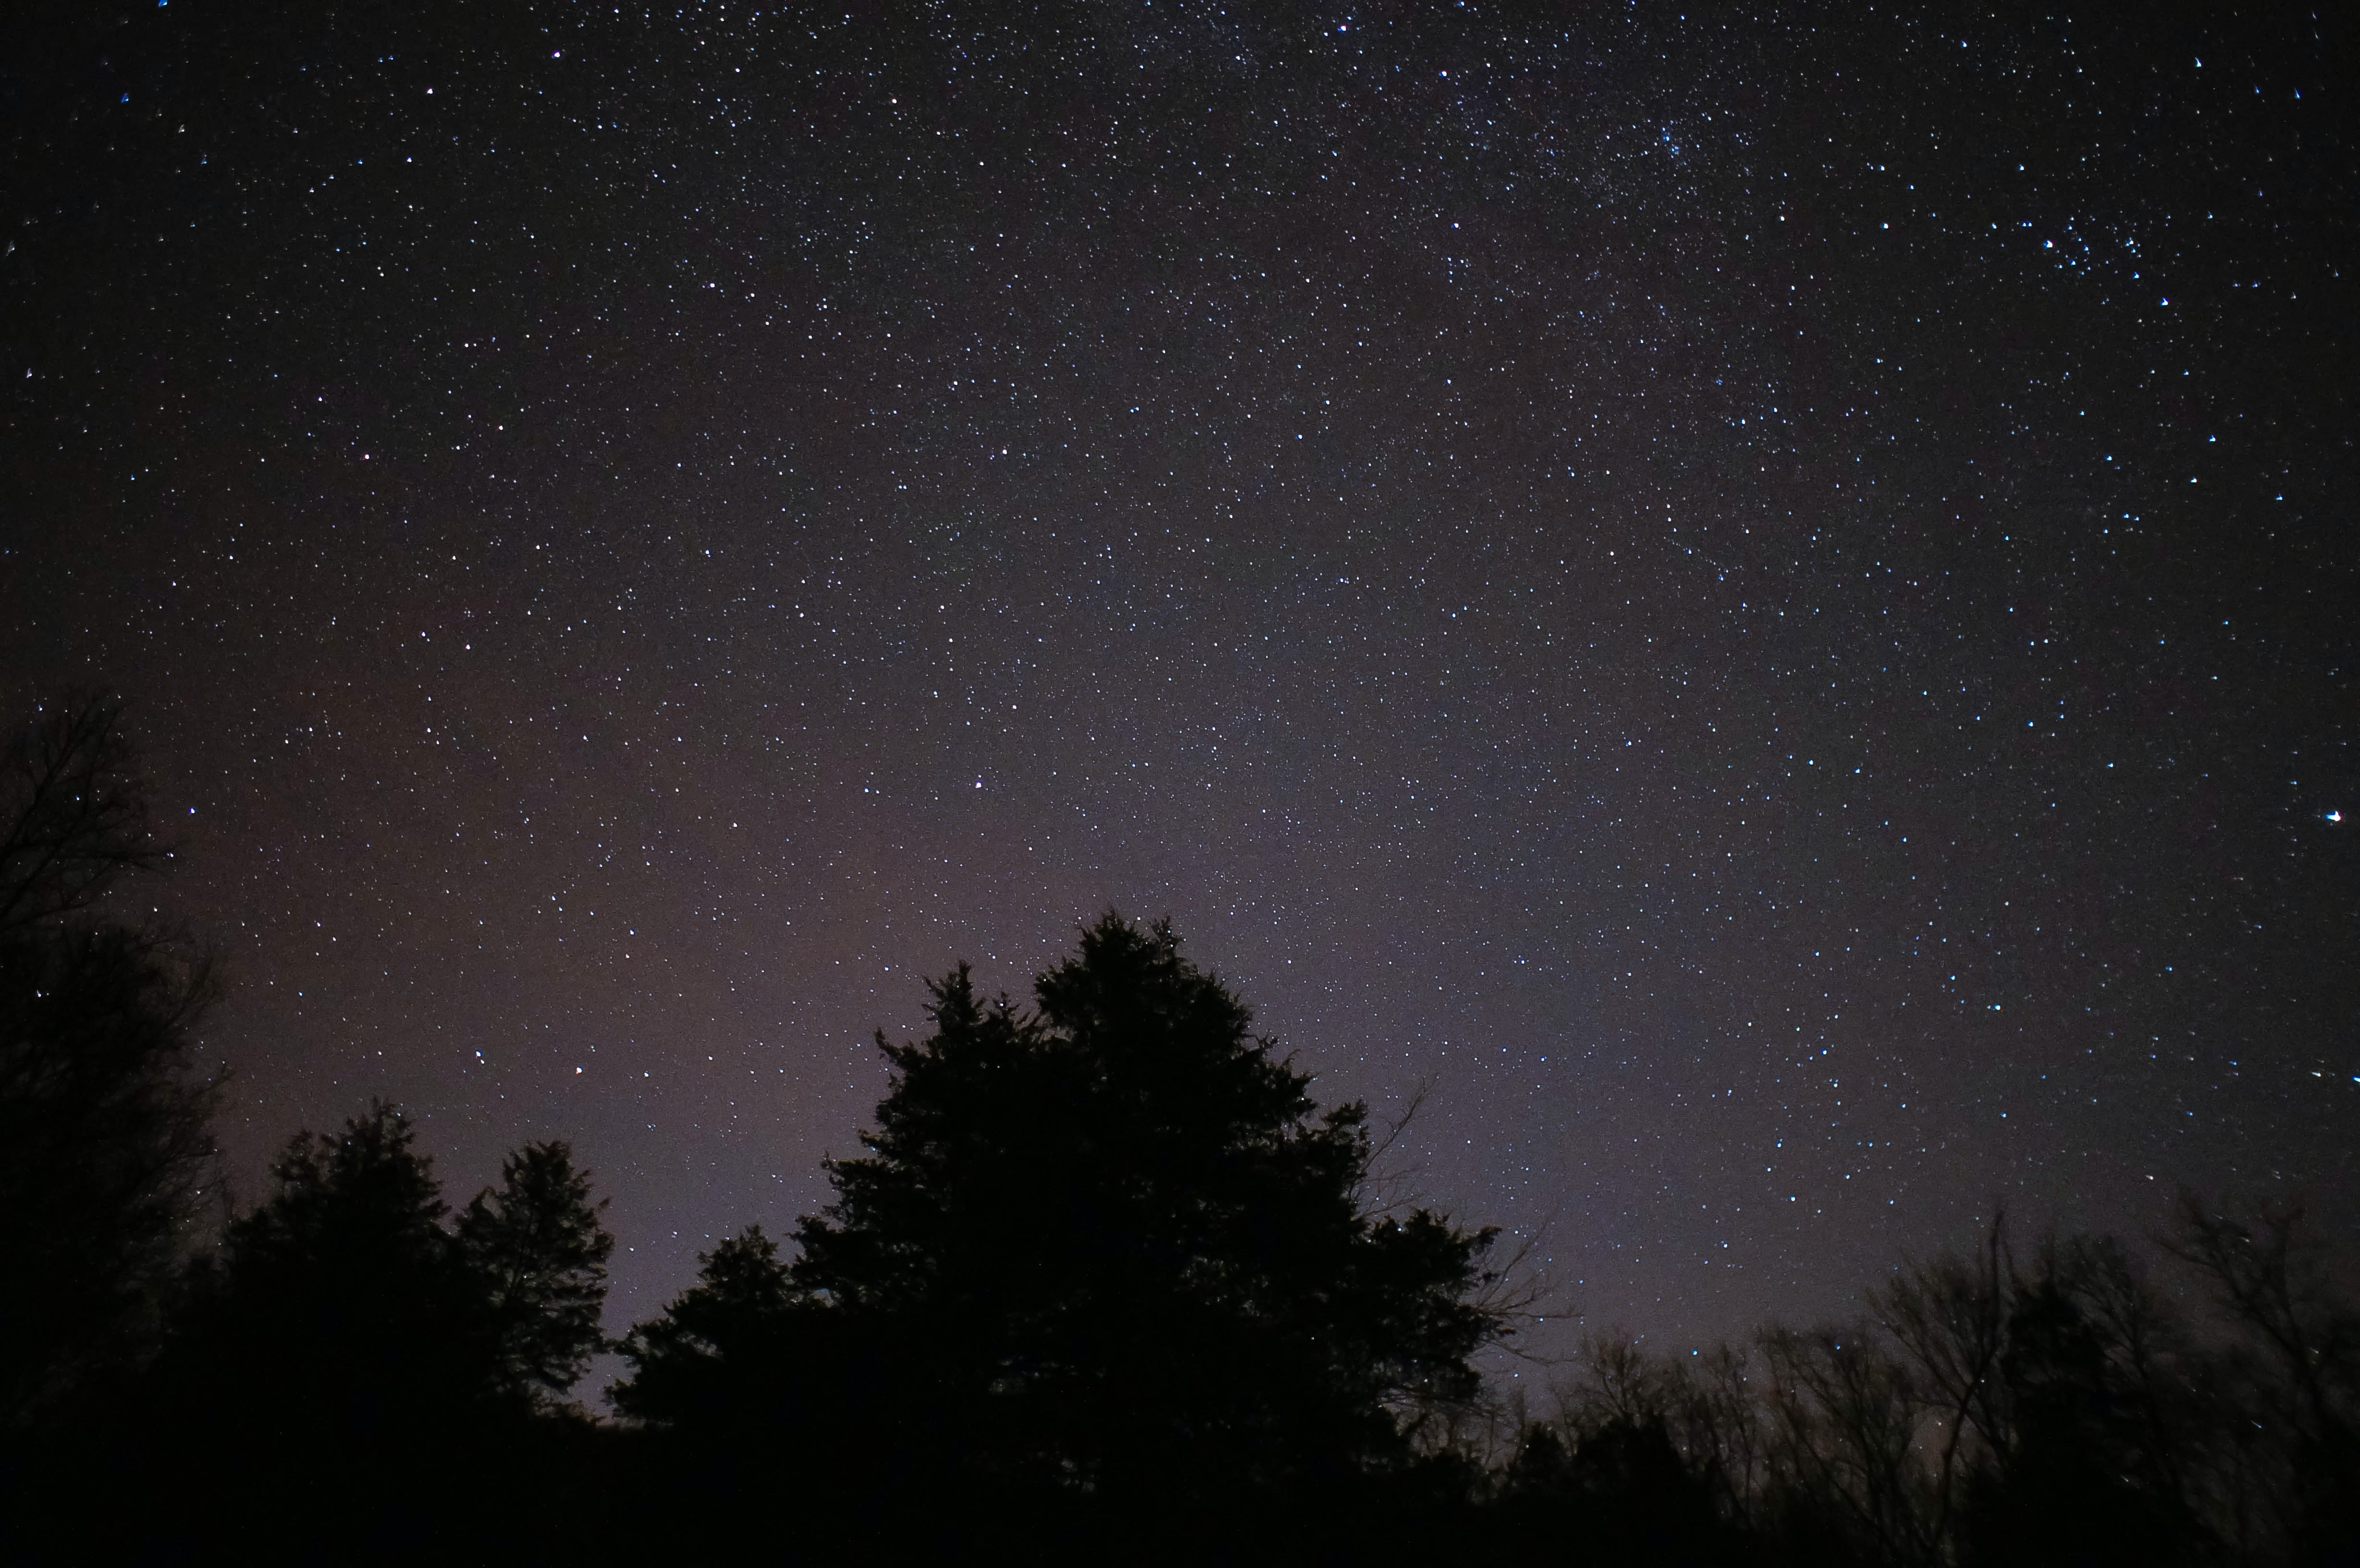 View in the night of trees and stars in space